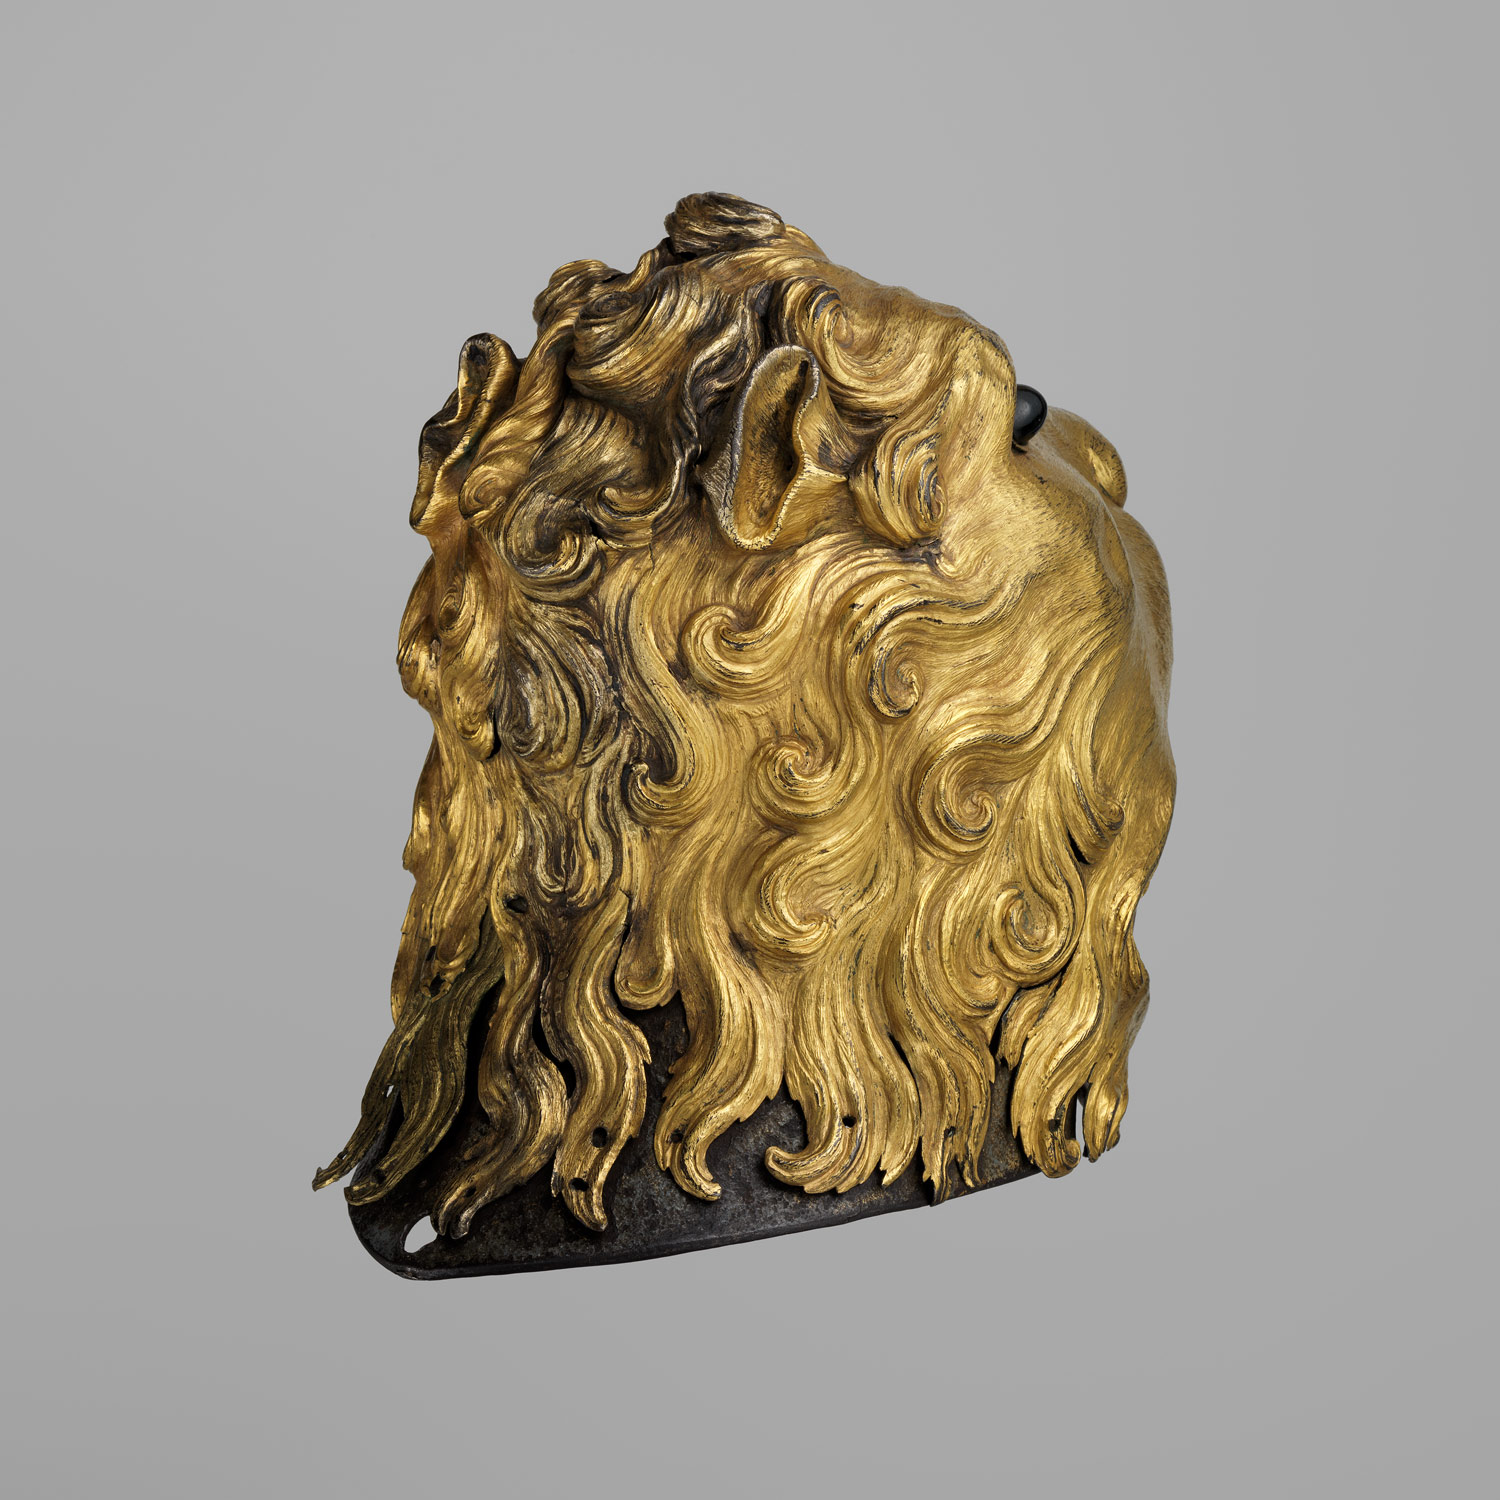 Sallet in the Shape of a Lions Head